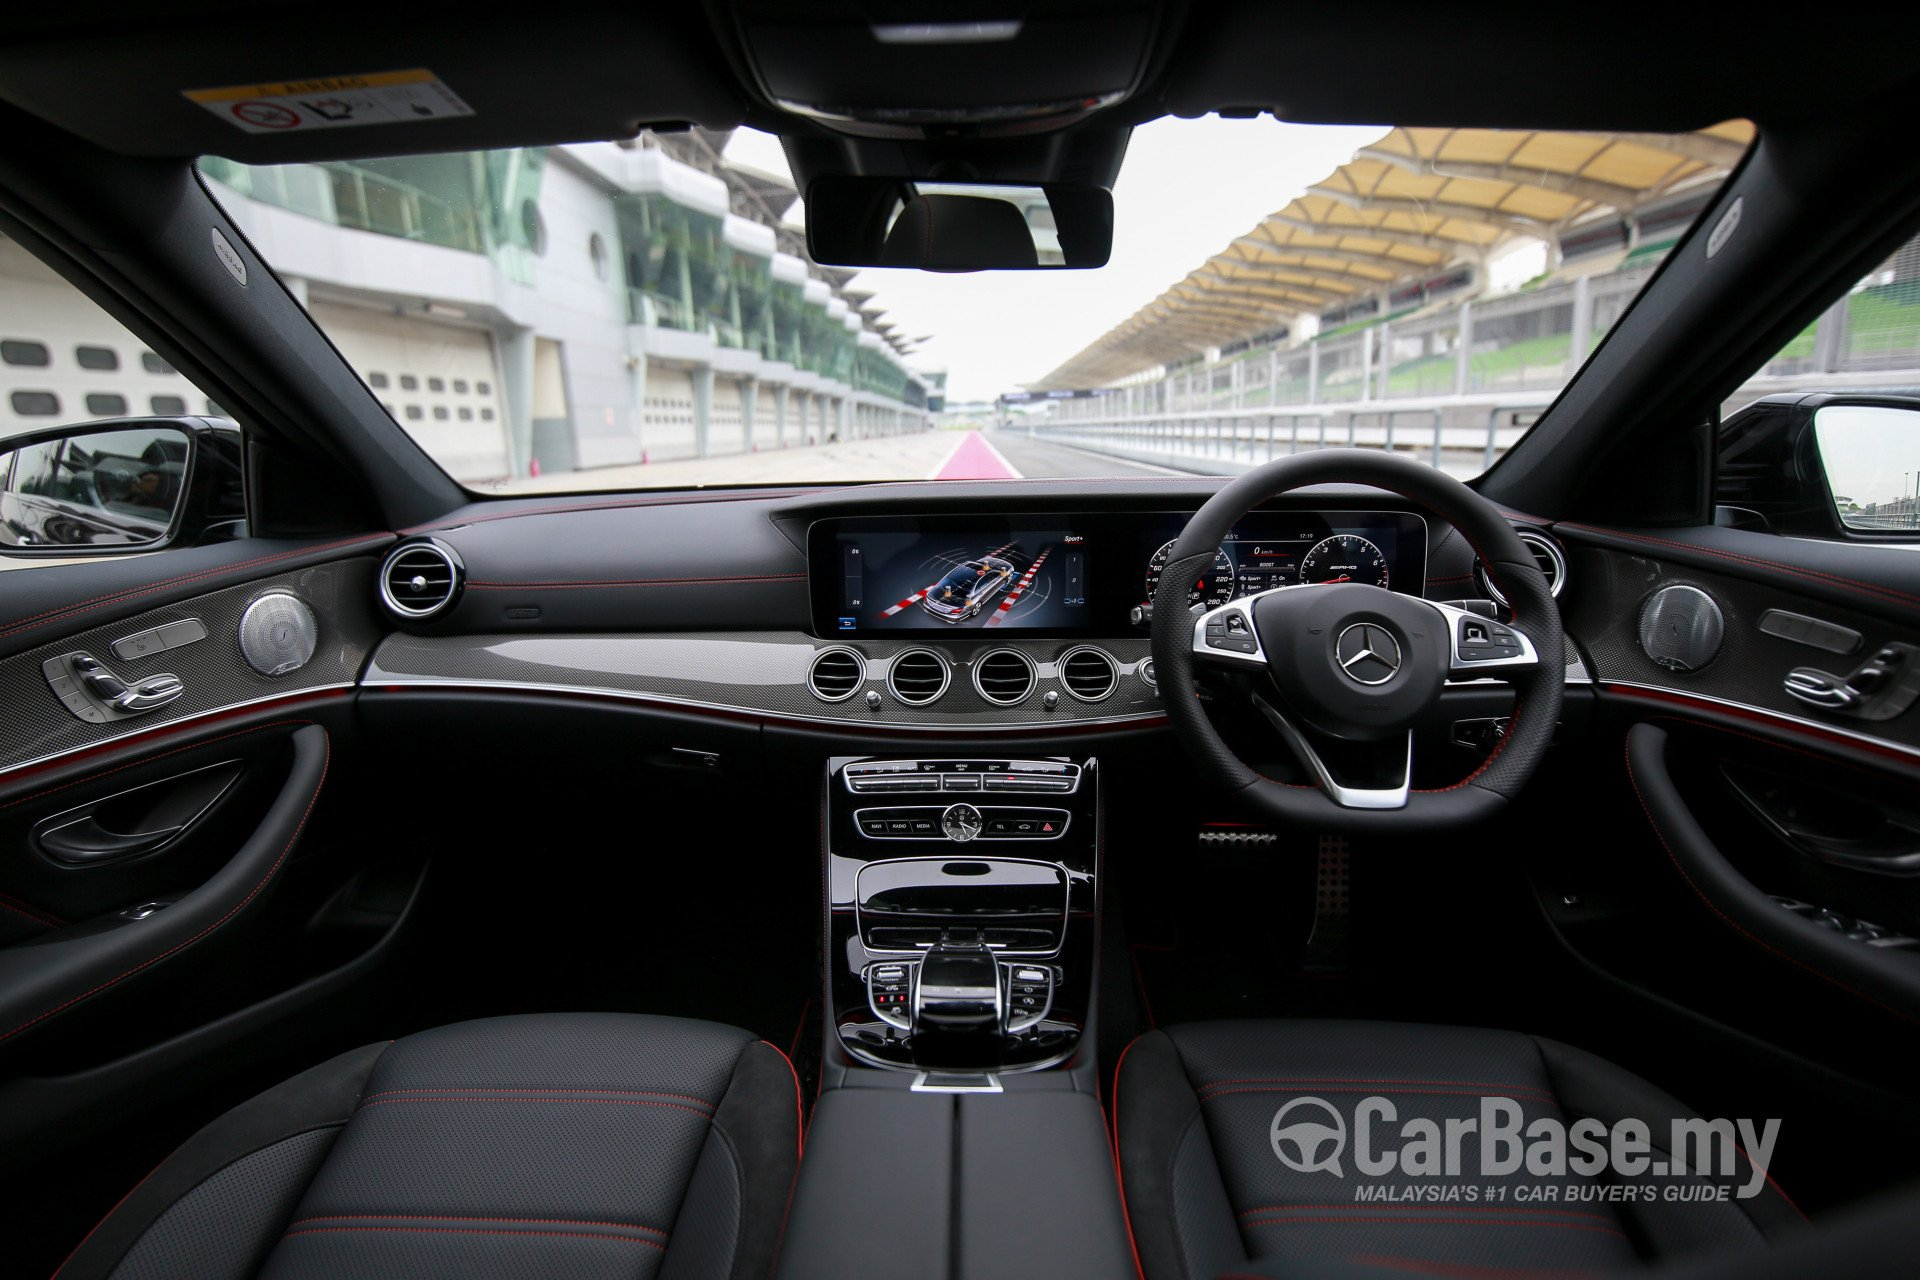 Mercedes-Benz AMG E-Class W213 (2017) Interior Image #38385 in